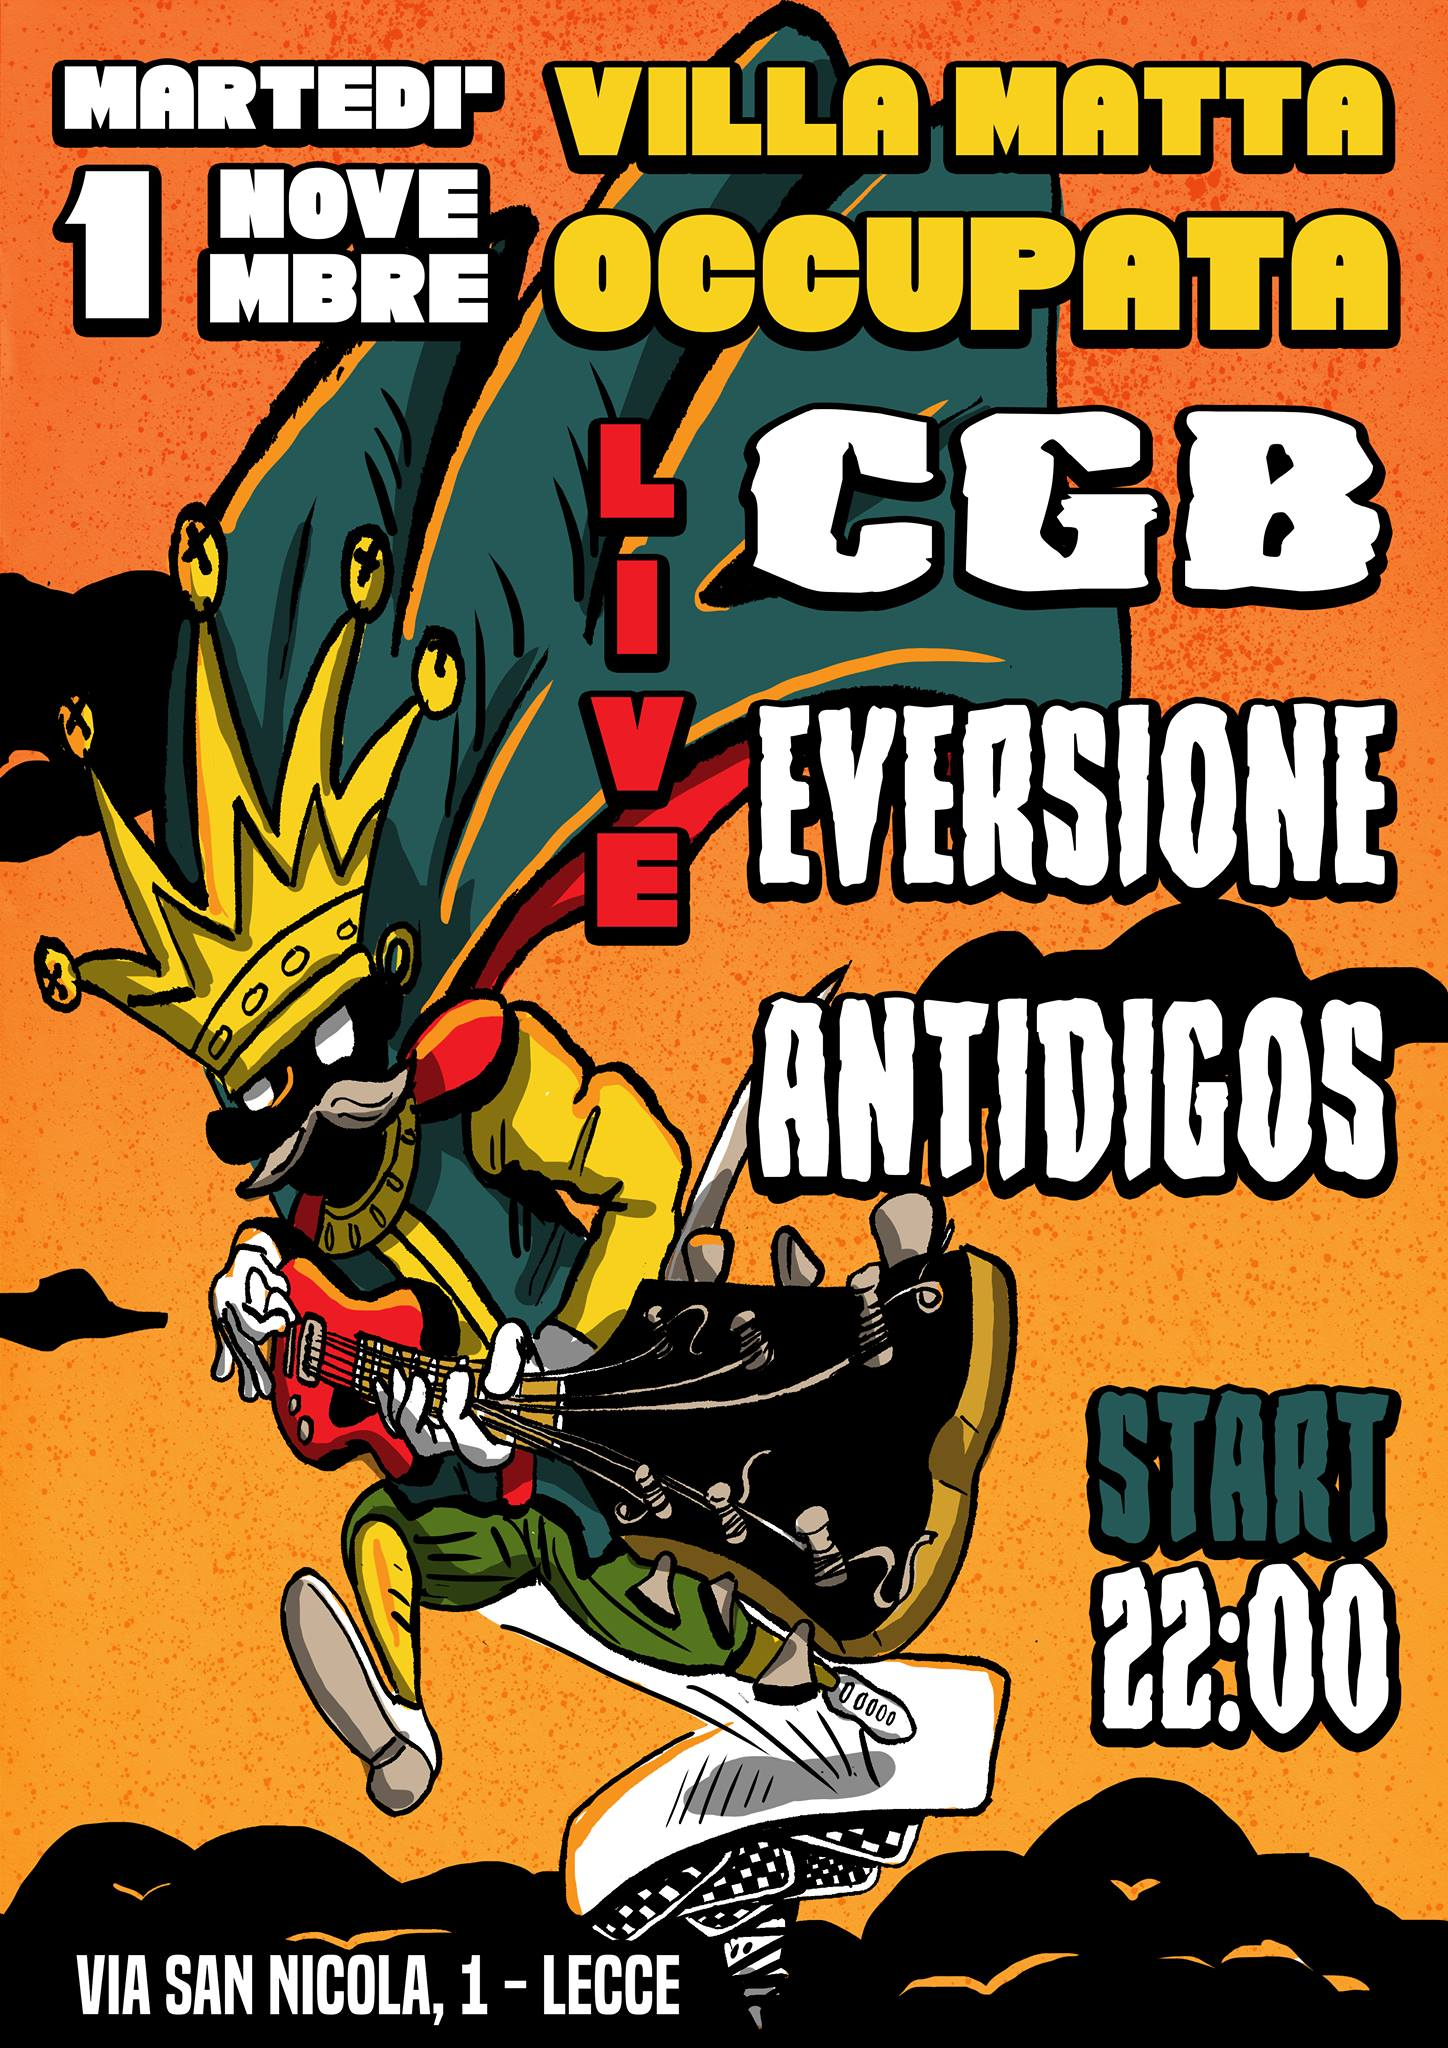 CGB,Eversione,Antidigos